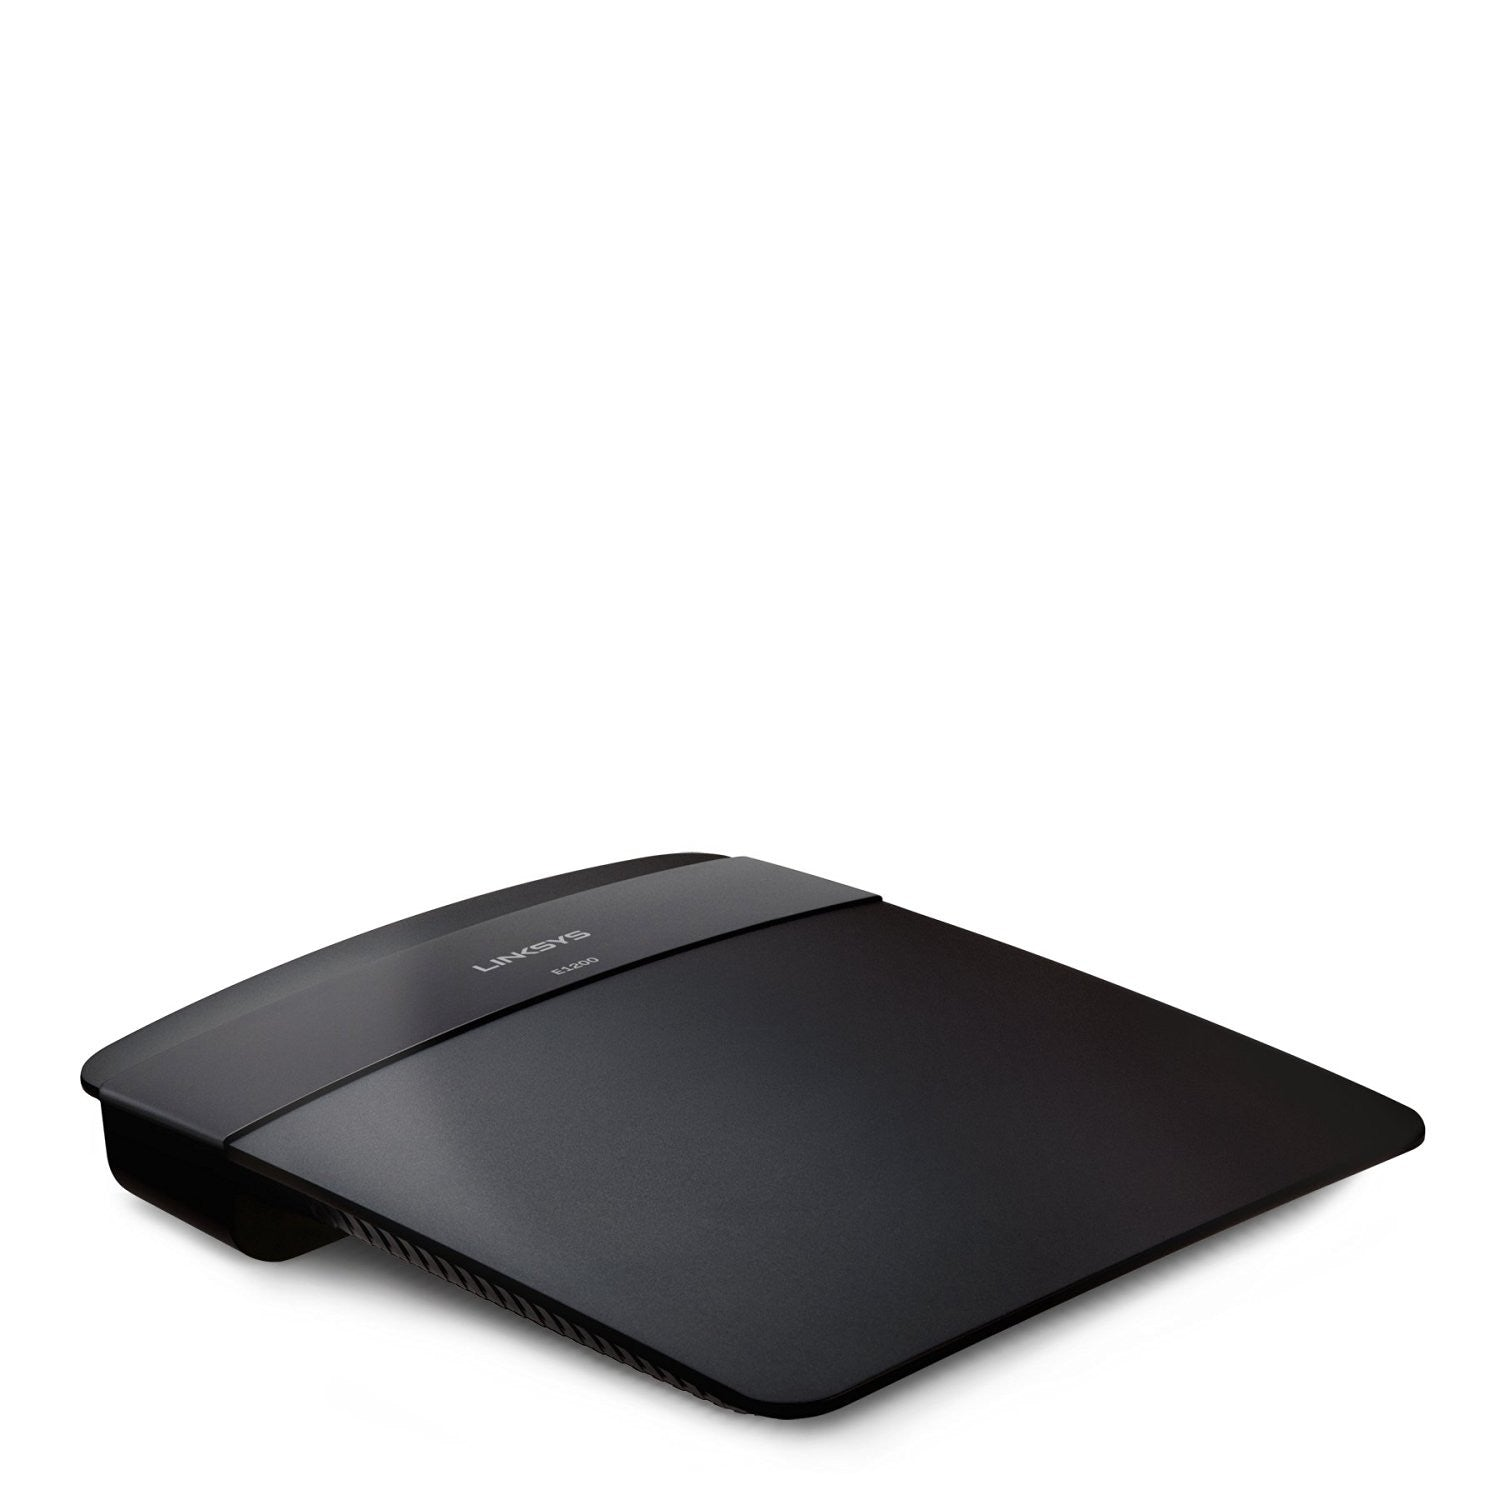 Overplay VPN Router Linksys N300 Flashed with Tomato Firmware Top View